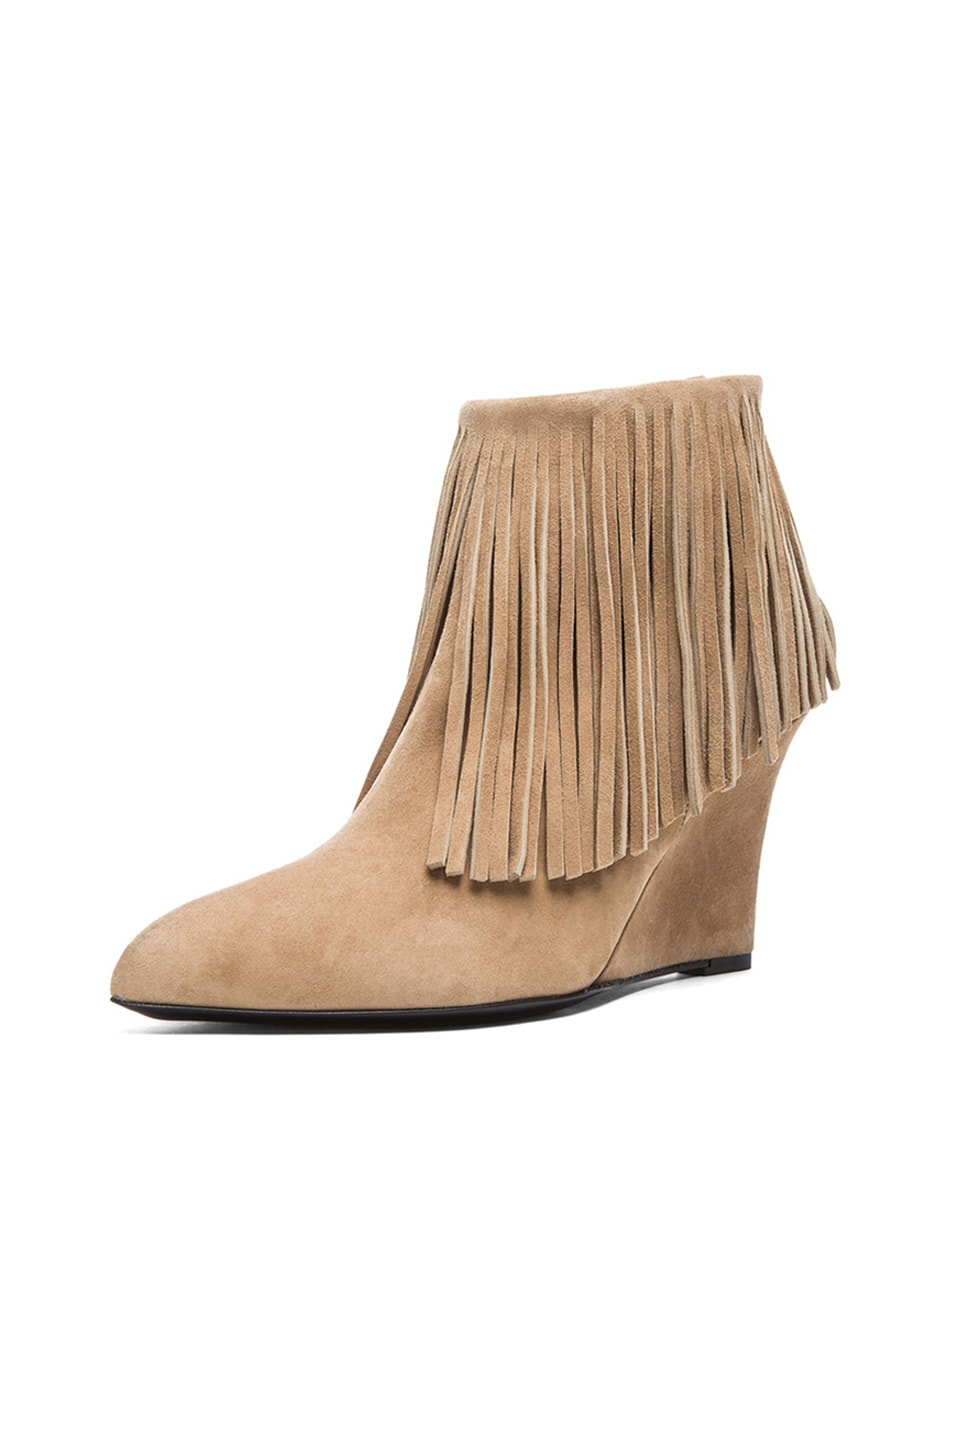 Image 2 of elysewalker los angeles Suede Fringe Booties in Taupe